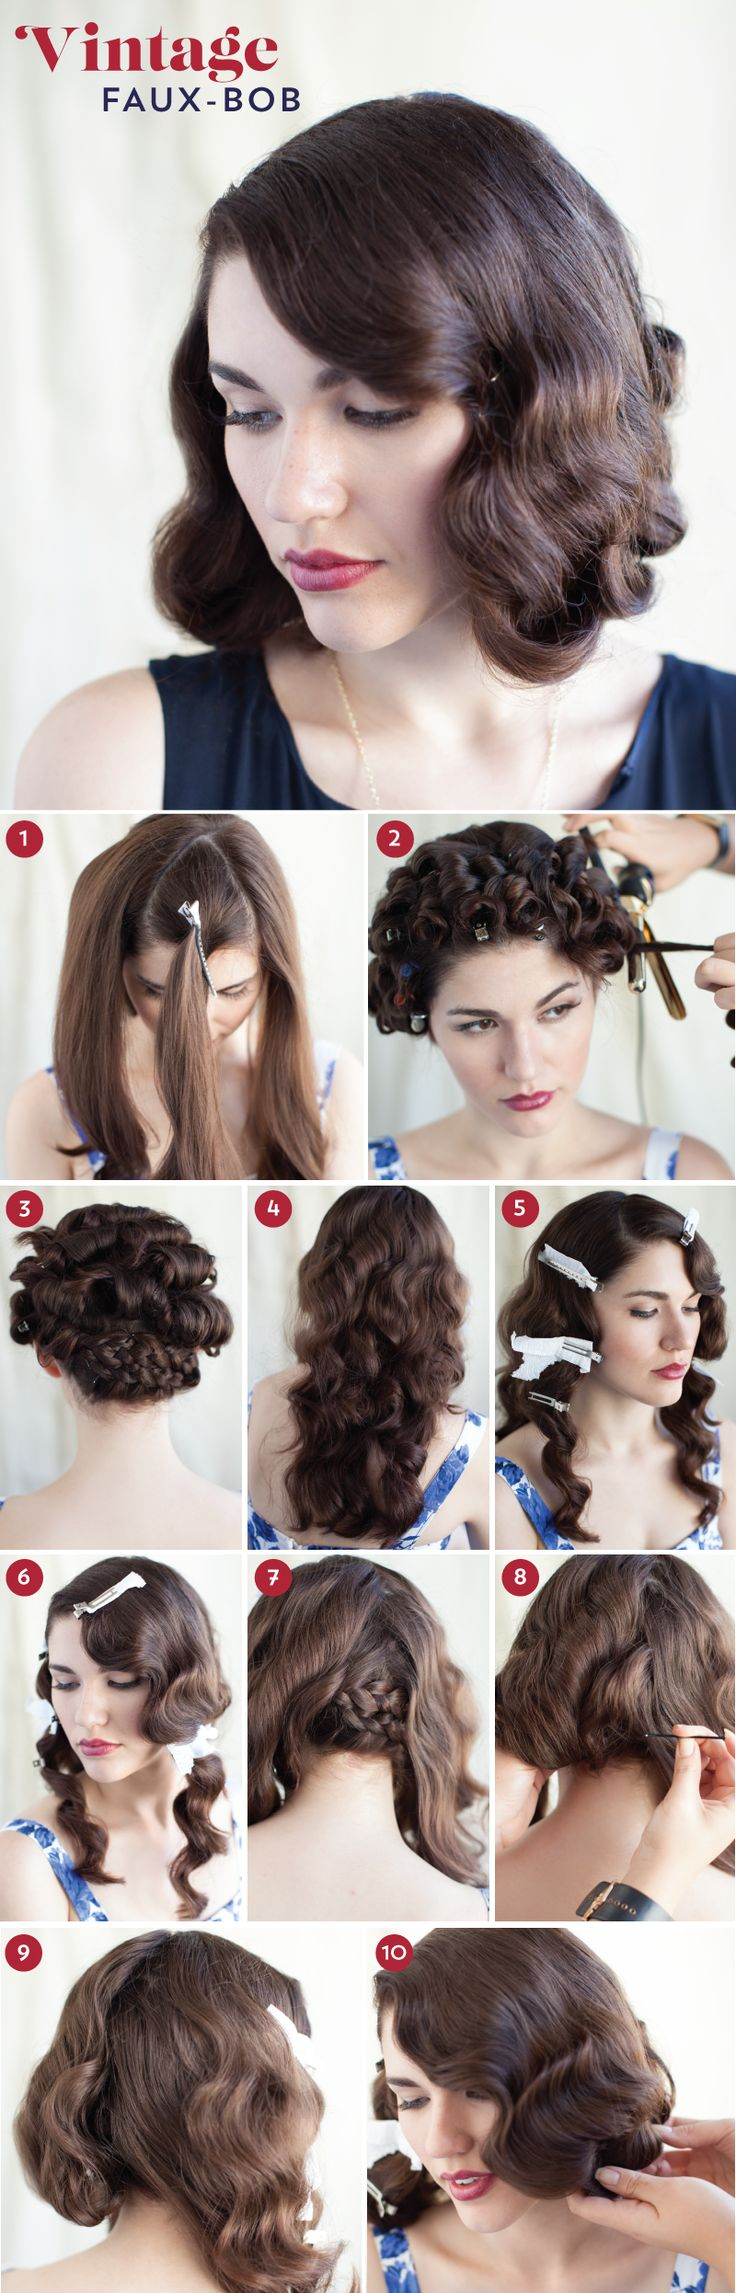 Behind the scenes look at how to create a show-stopping faux-bob! #tutorial #hair #diy #style